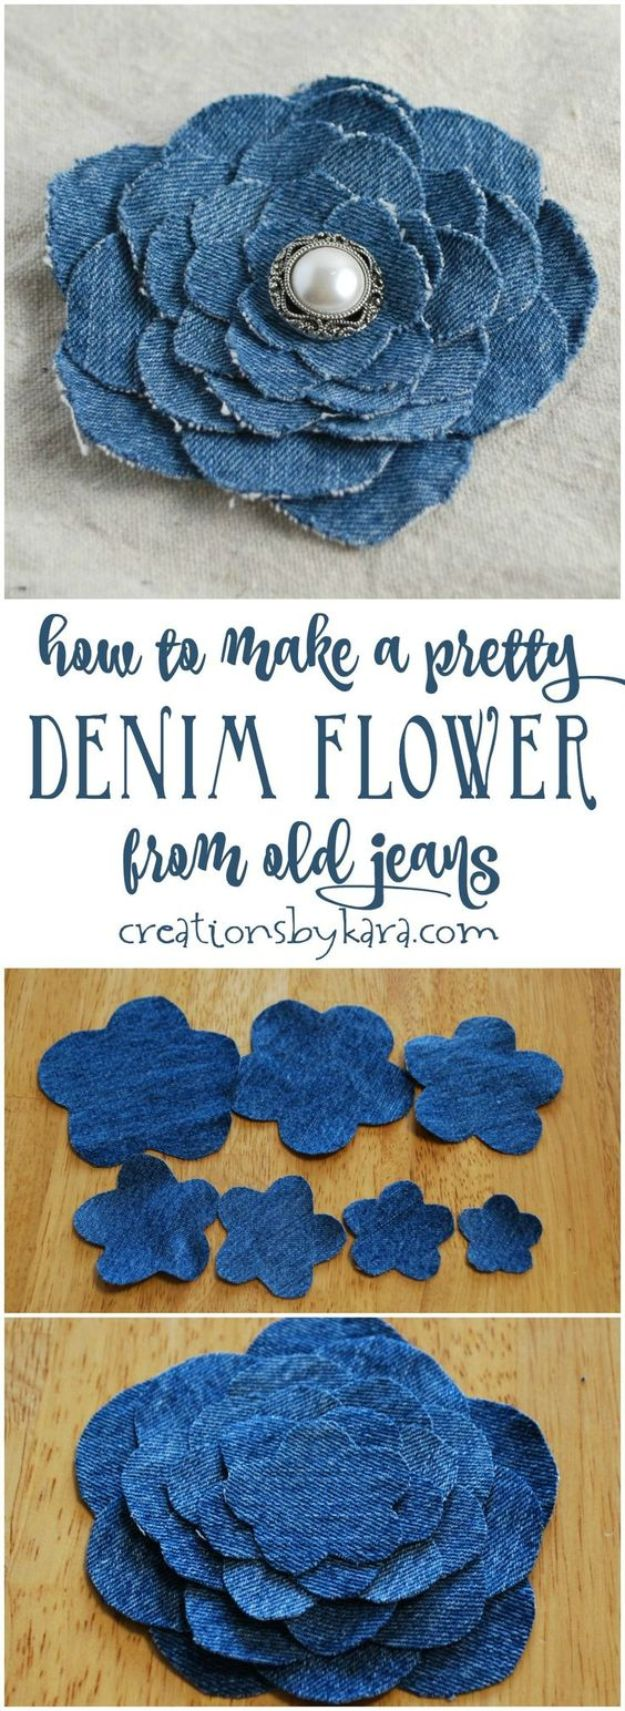 Blue Jean Upcycles - Denim Flower From Old Jeans - Ways to Make Old Denim Jeans Into DIY Home Decor, Handmade Gifts and Creative Fashion - Transform Old Blue Jeans into Pillows, Rugs, Kitchen and Living Room Decor, Easy Sewing Projects for Beginners http://diyjoy.com/diy-blue-jeans-upcyle-ideas